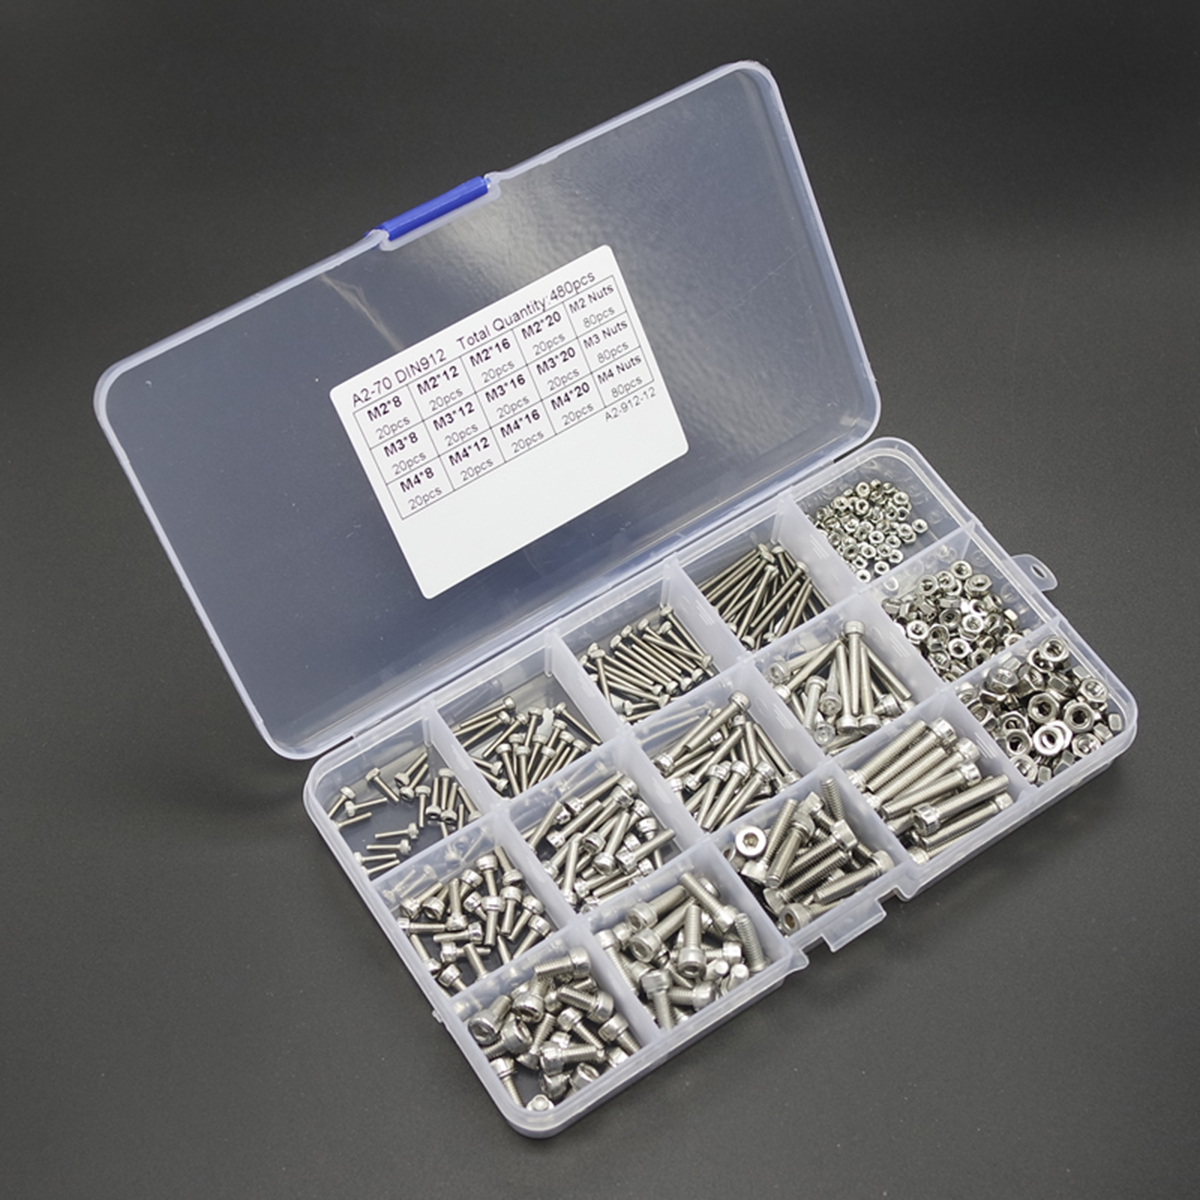 480pcs Stainless Steel Hex Socket Screws M2 M3 M4 Head Cap Screw Nut Set With Box Mayitr 250pcs set m3 5 6 8 10 12 14 16 20 25mm hex socket head cap screw stainless steel m3 screw accessories kit sample box